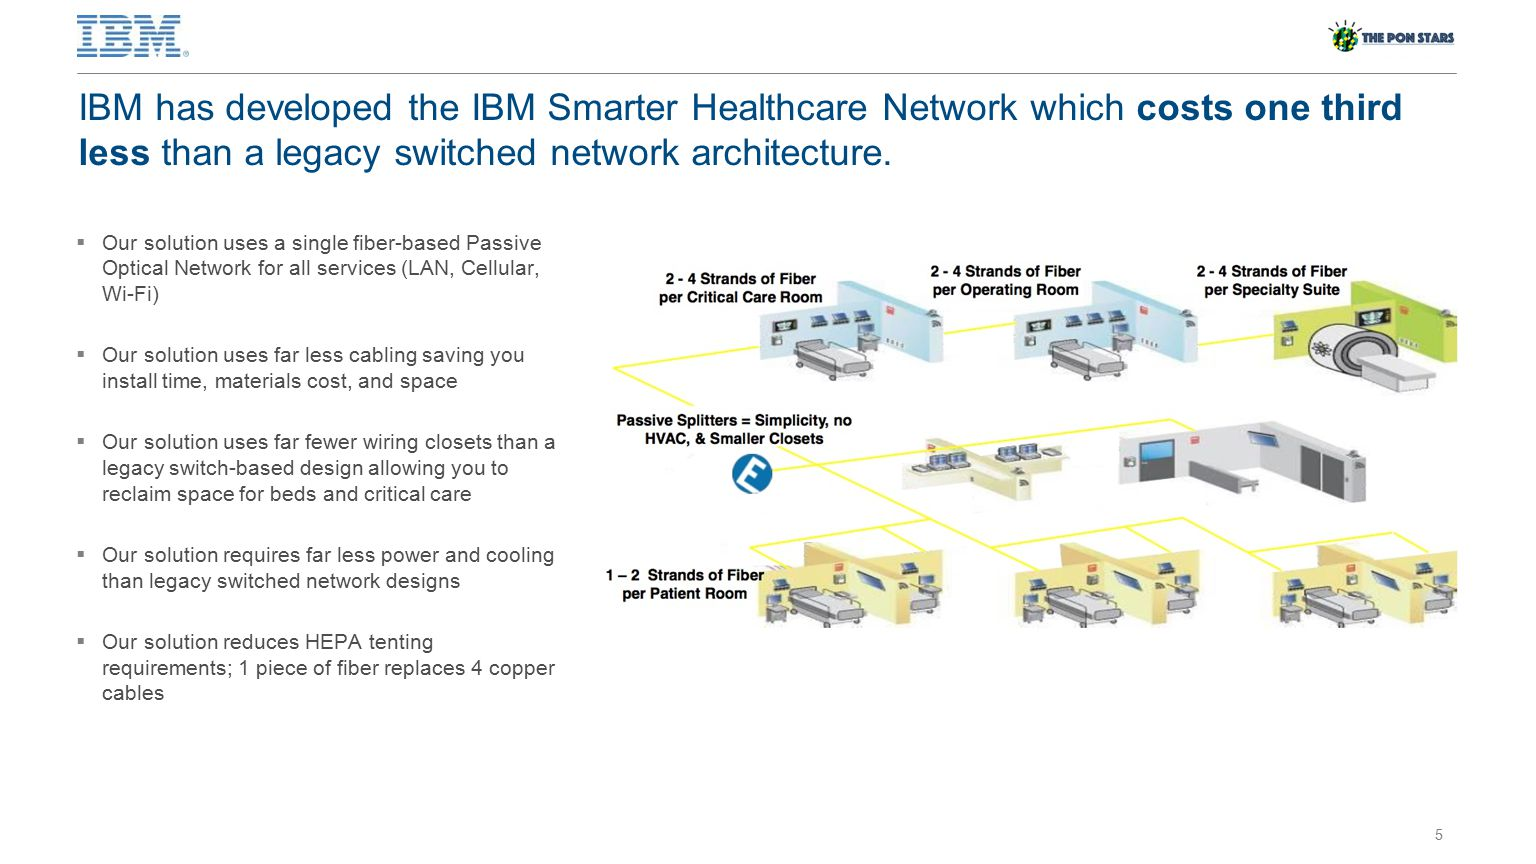 2012 International Business Machines Corporation 1 North America Iot Network Wiring Closet Diagram 5 1q All Manager And Executive Call